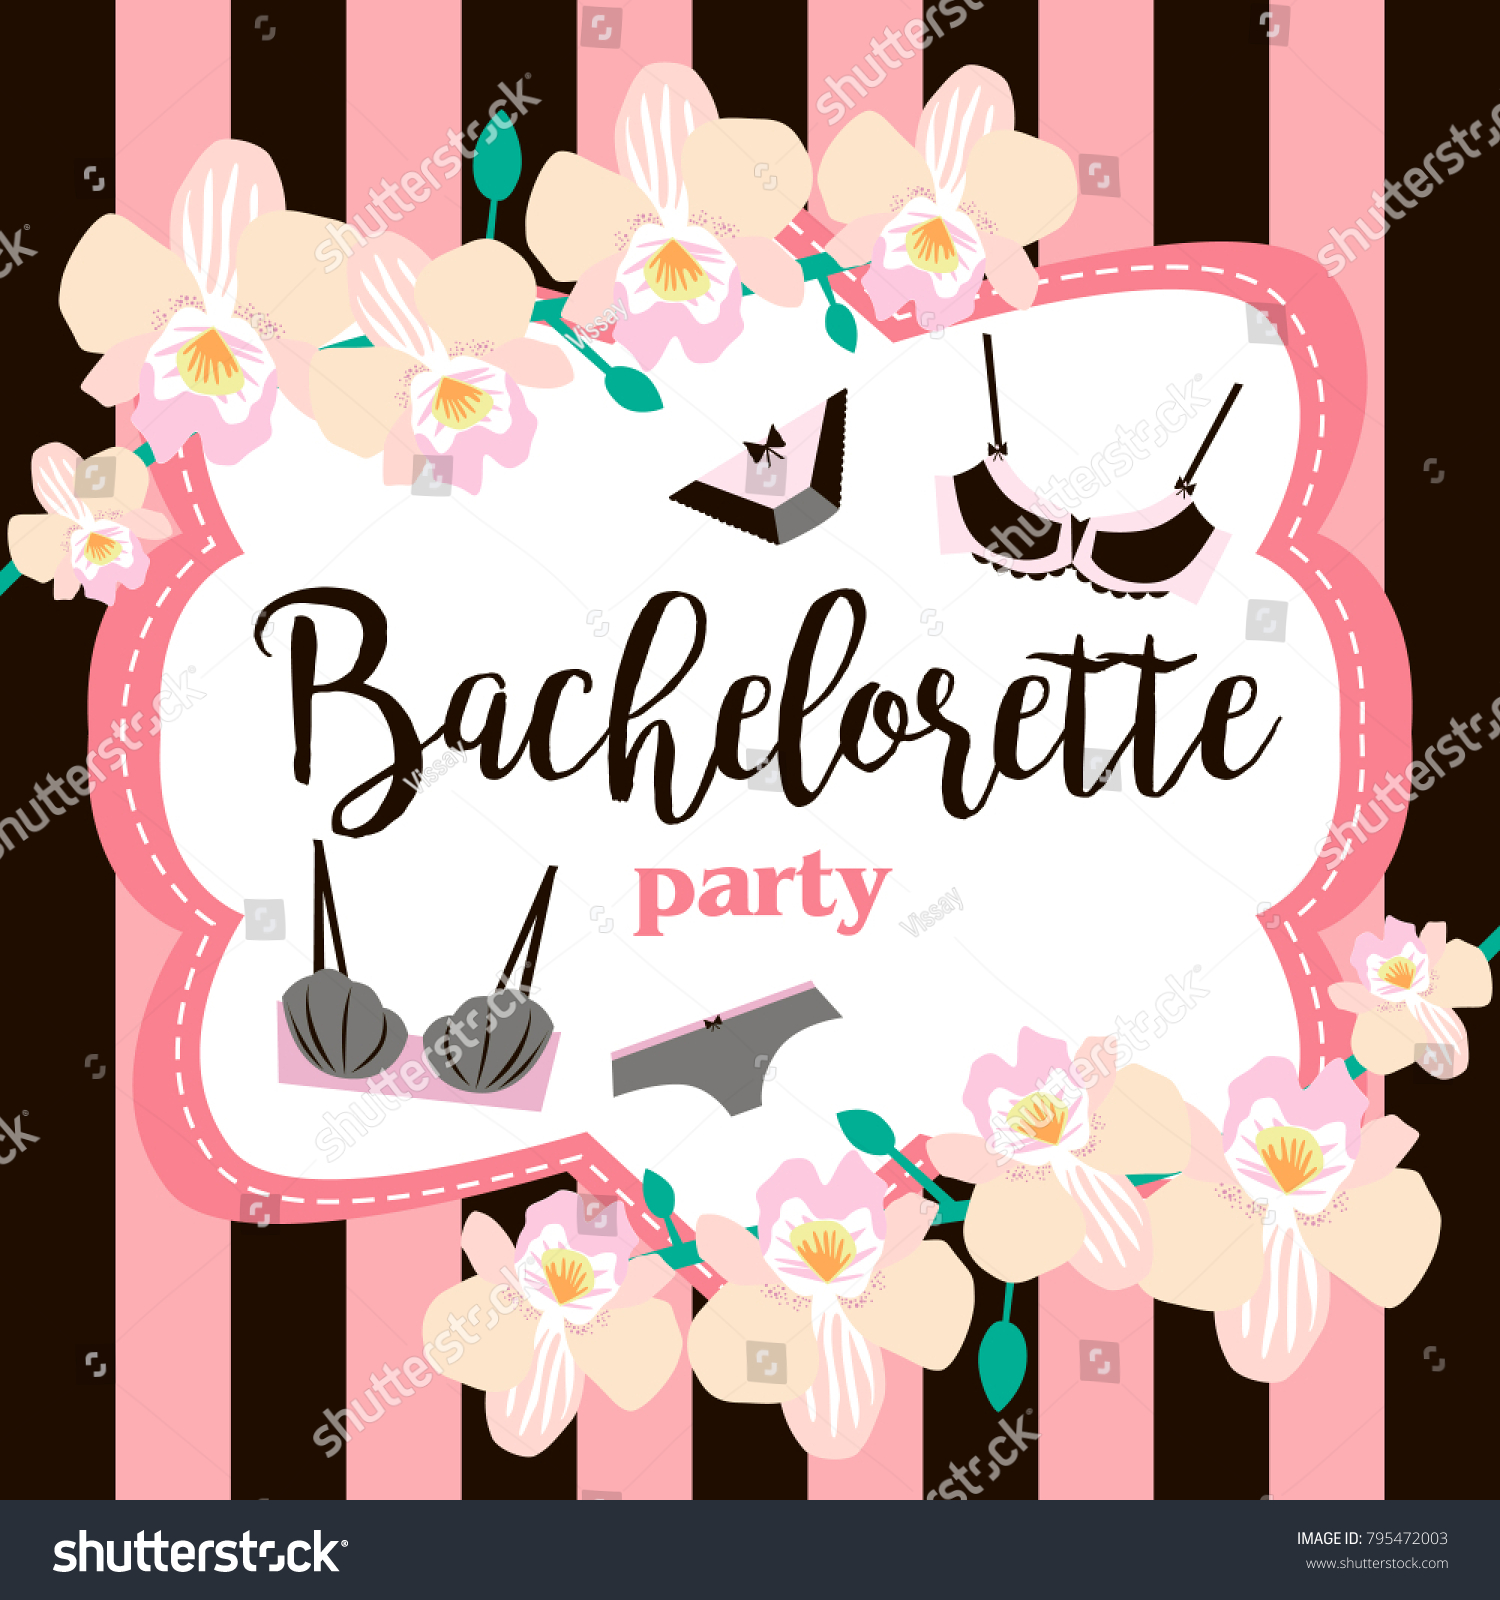 Lingerie Party Invitation Cards Beautiful Underwear Stock Vector